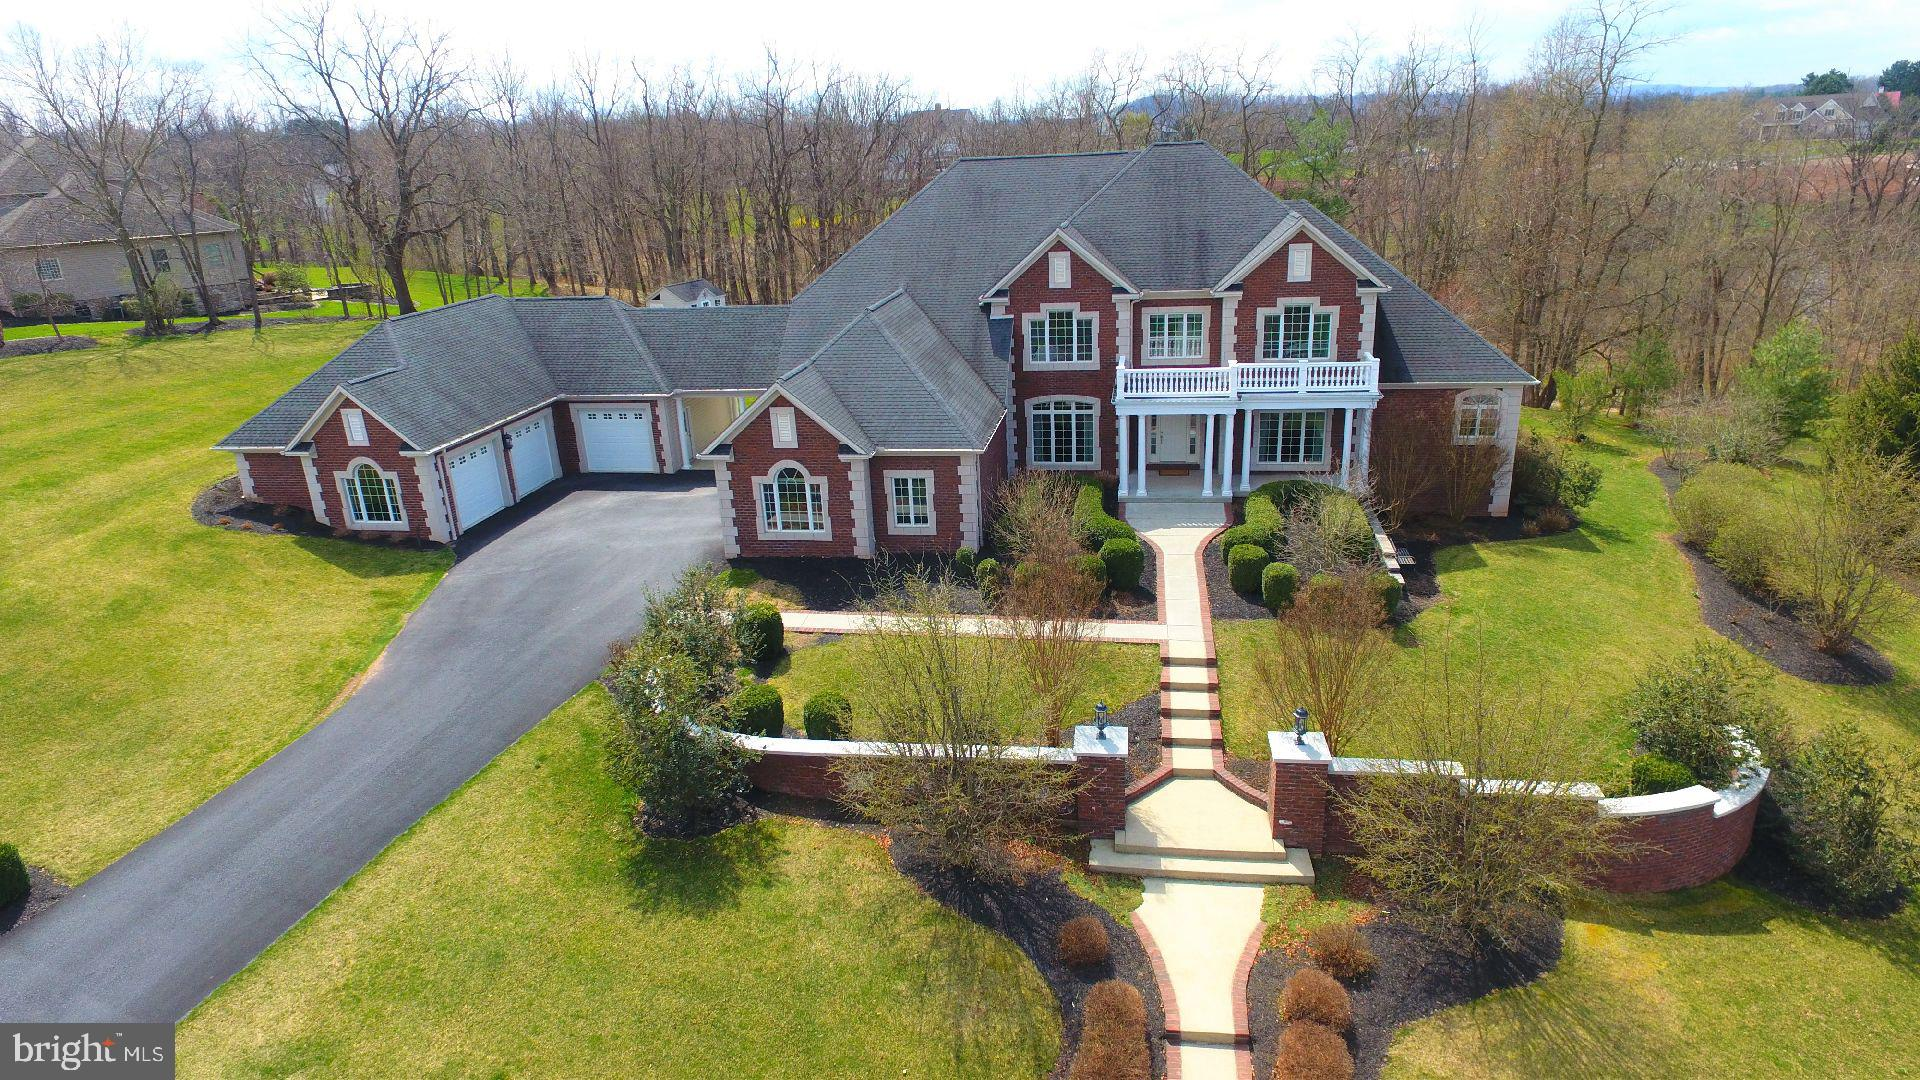 105 TURTLE HOLLOW DRIVE, LEWISBERRY, PA 17339